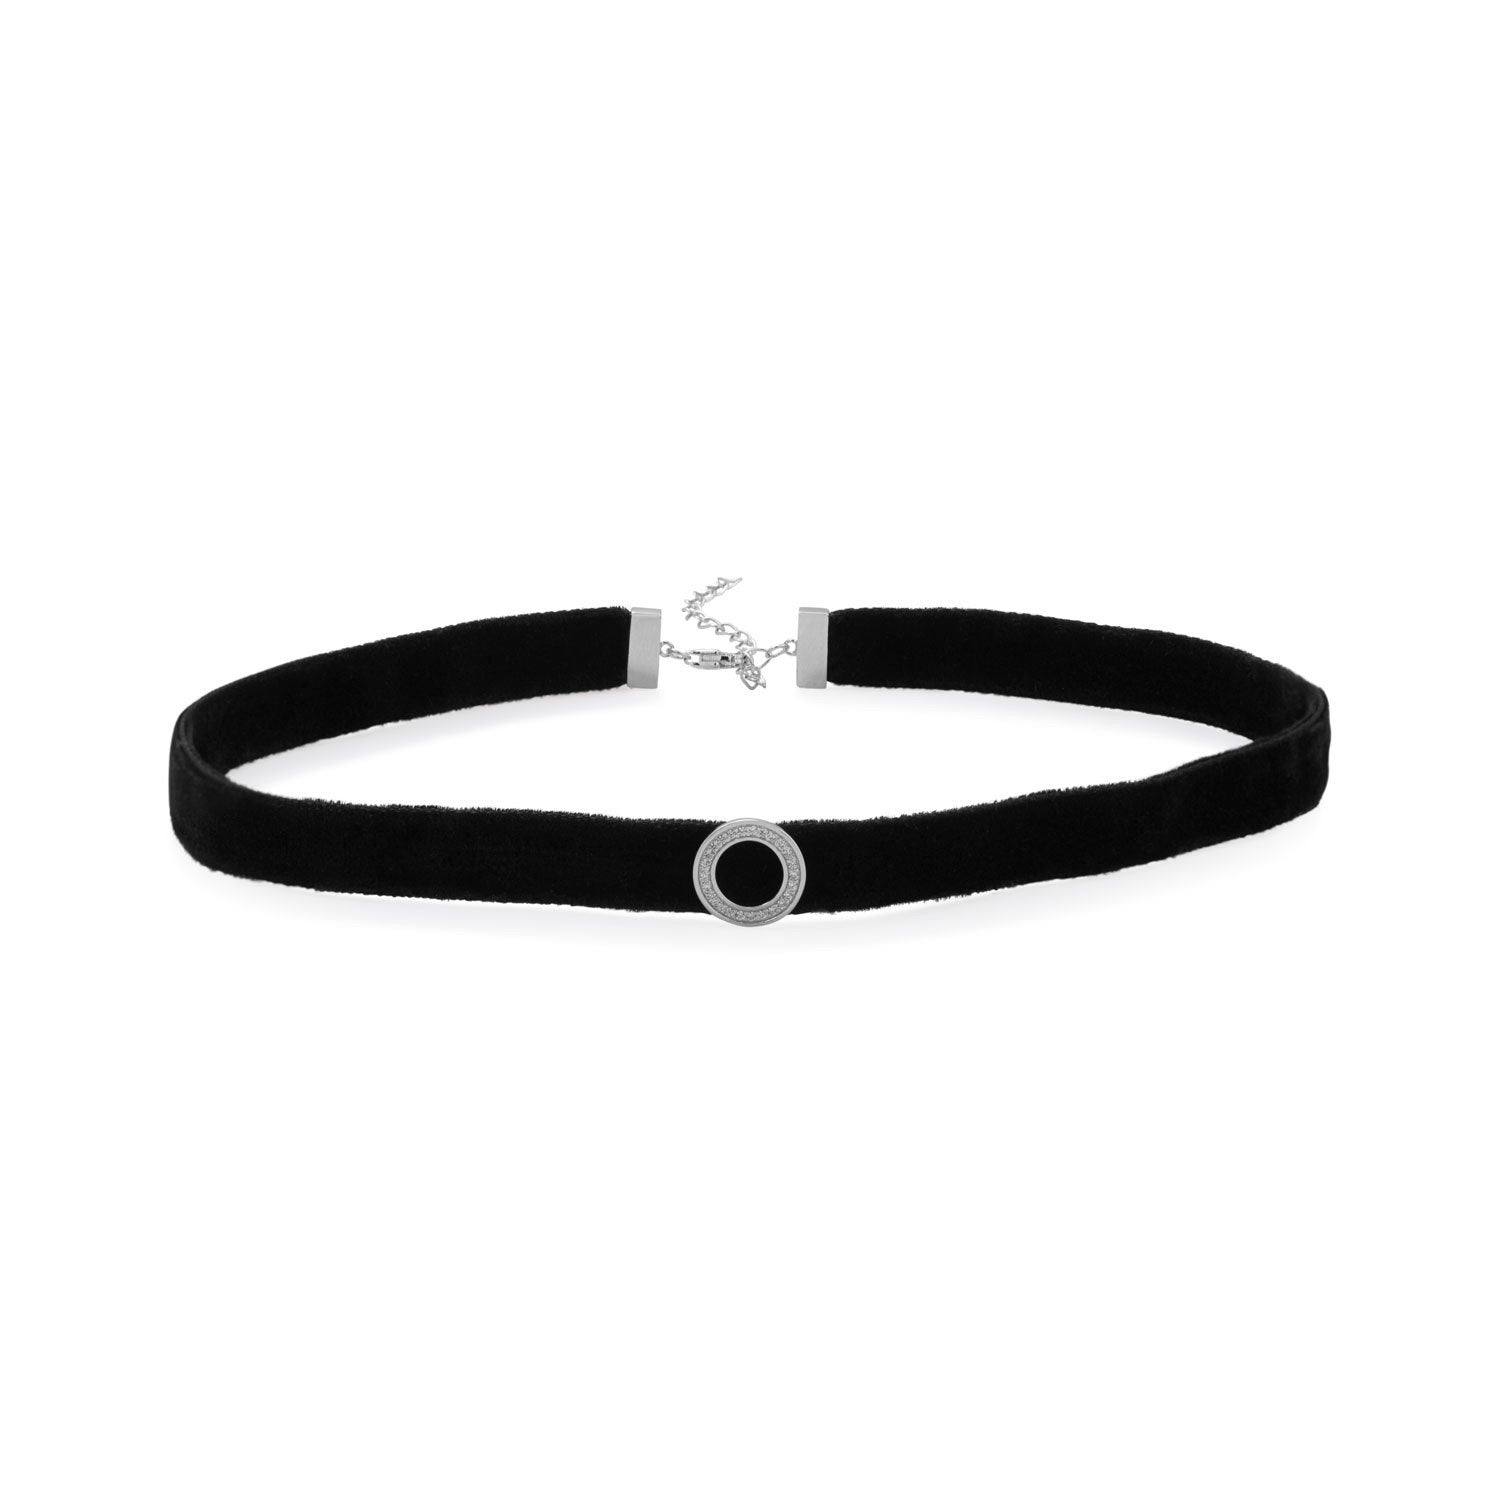 Rhodium Plated CZ Circle Black Velvet Choker Necklace - the-southern-magnolia-too